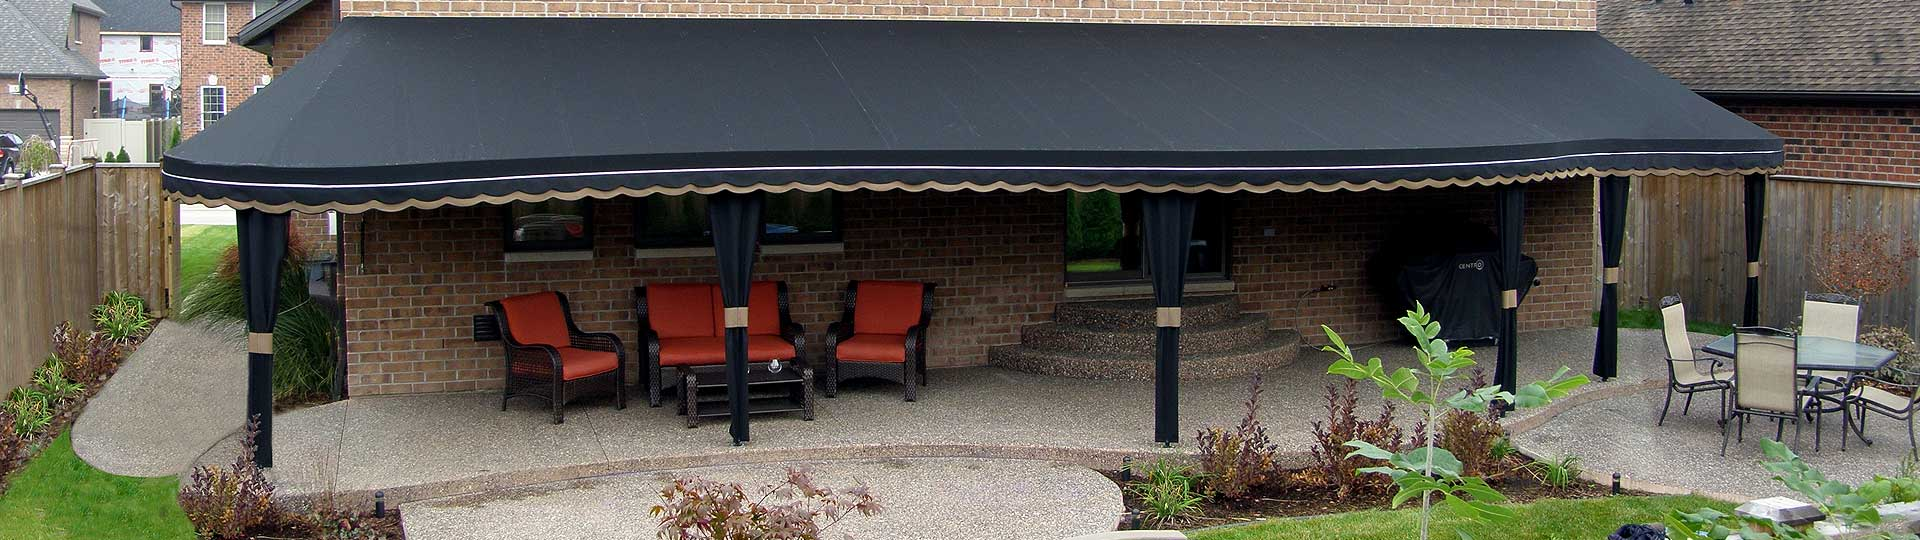 Windsor based awning manufacturer